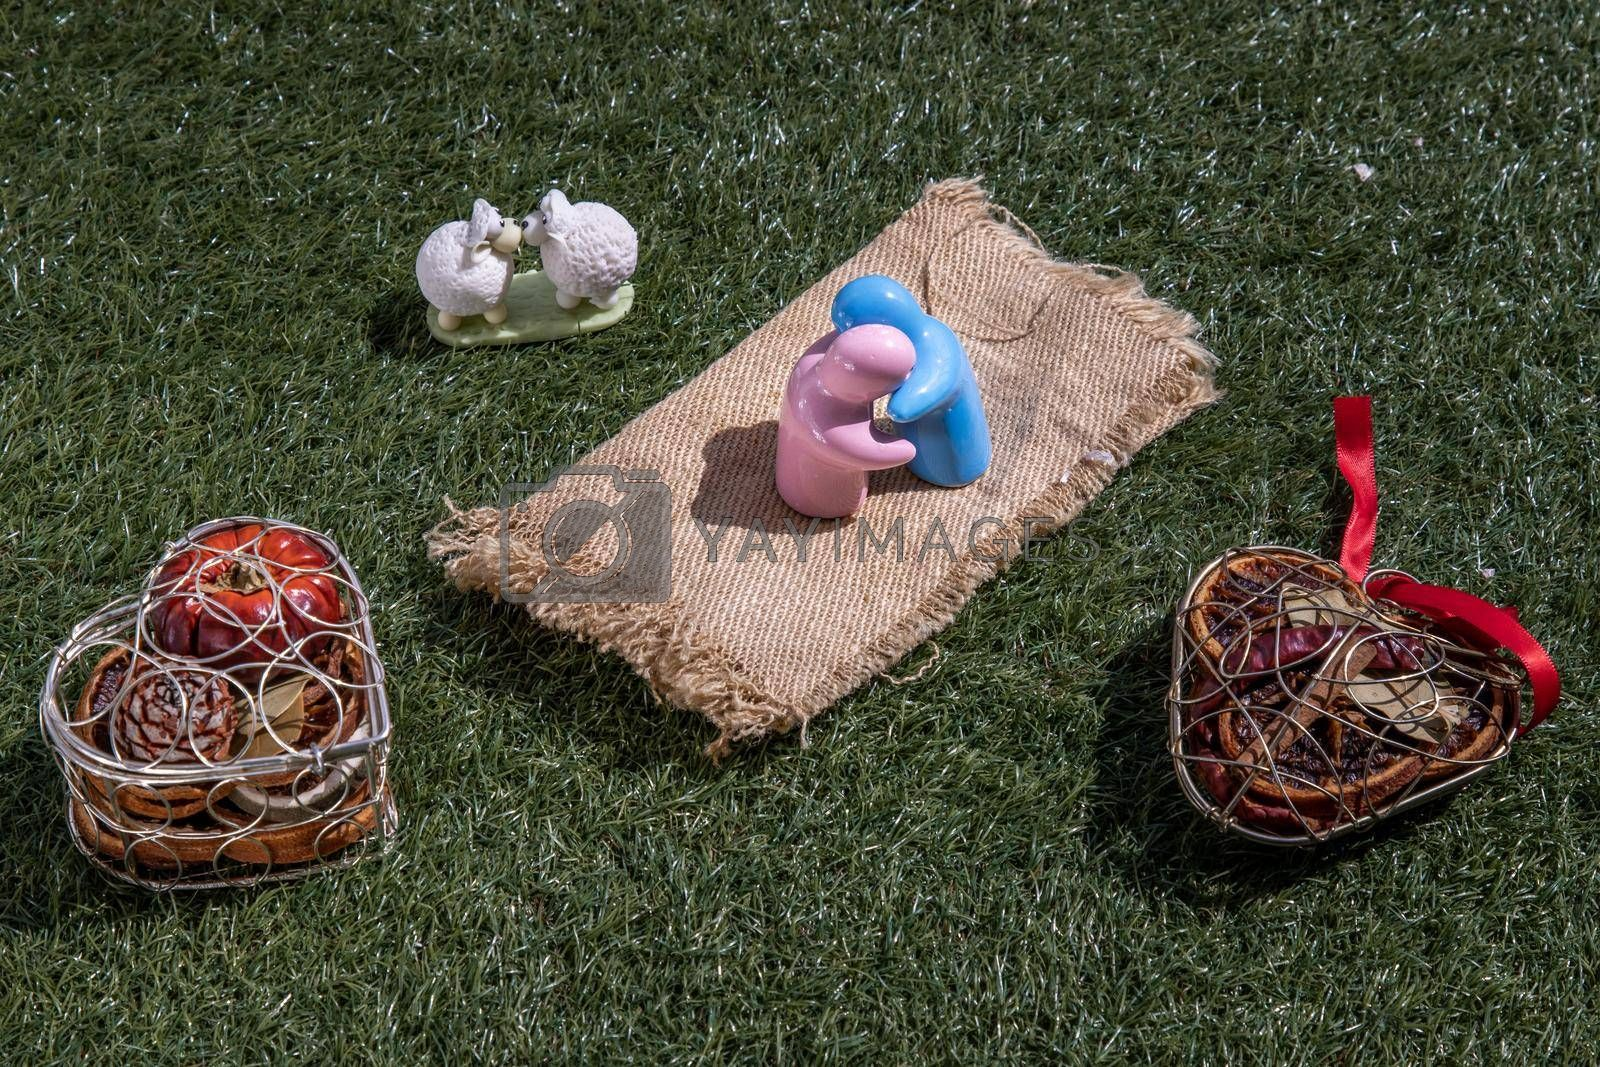 Sheep ceramic couple dolls Kissing and ceramic couple dolls hug on lawn. Concept for anniversary, Wedding and eternal love concept, Romance wedding or Valentine's day.